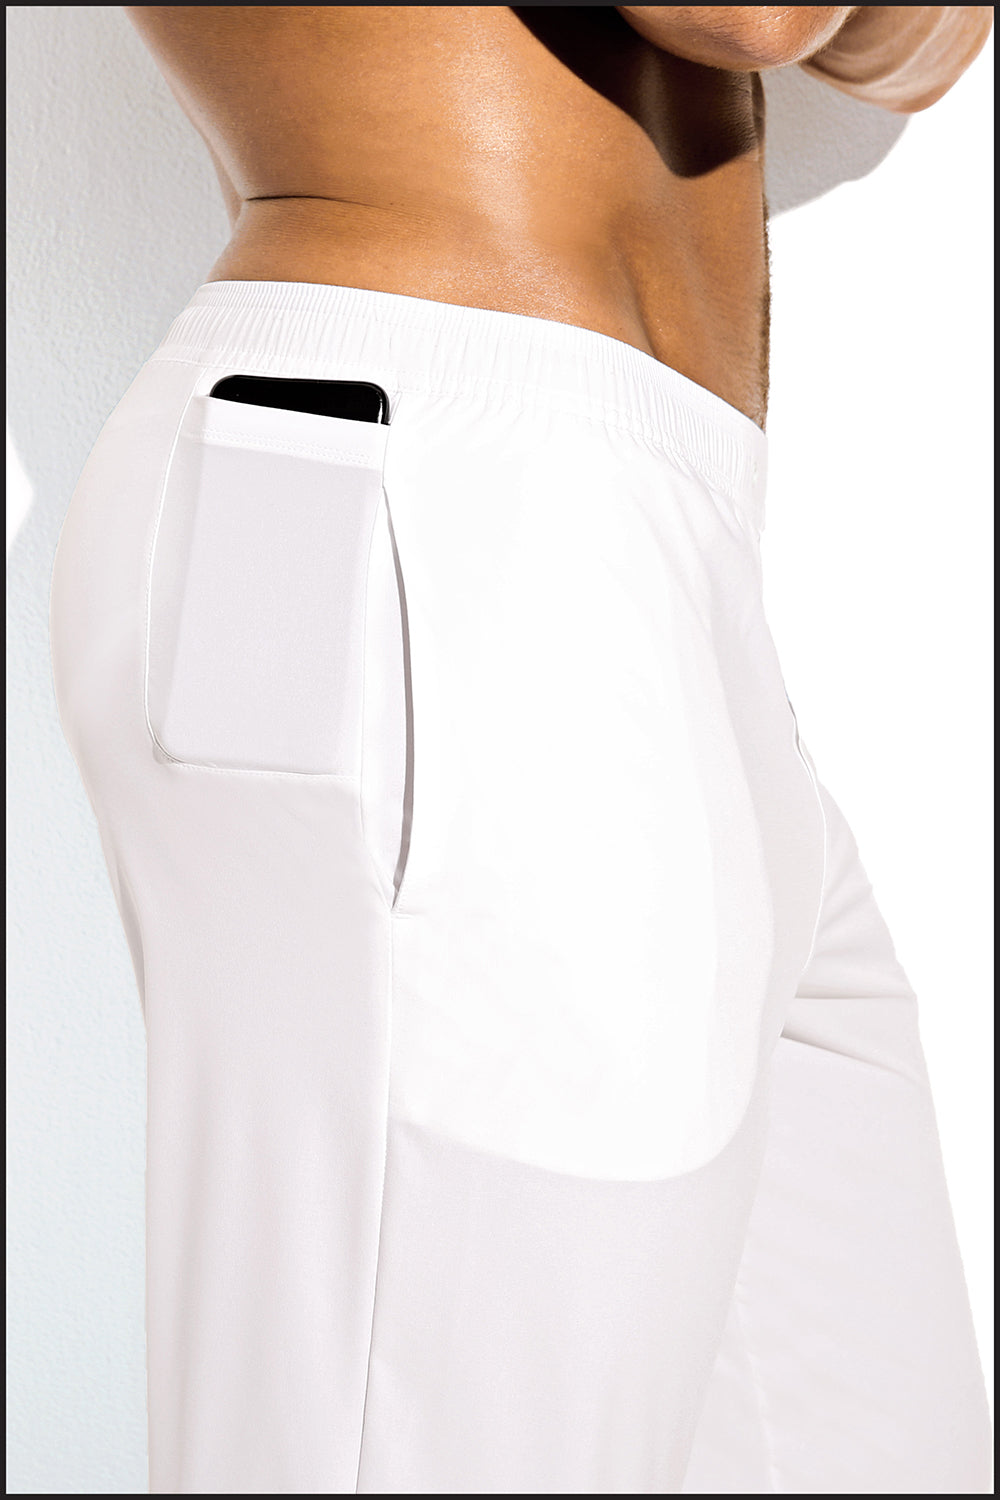 Charlie by Matthew Zink Fitness Sport Pant